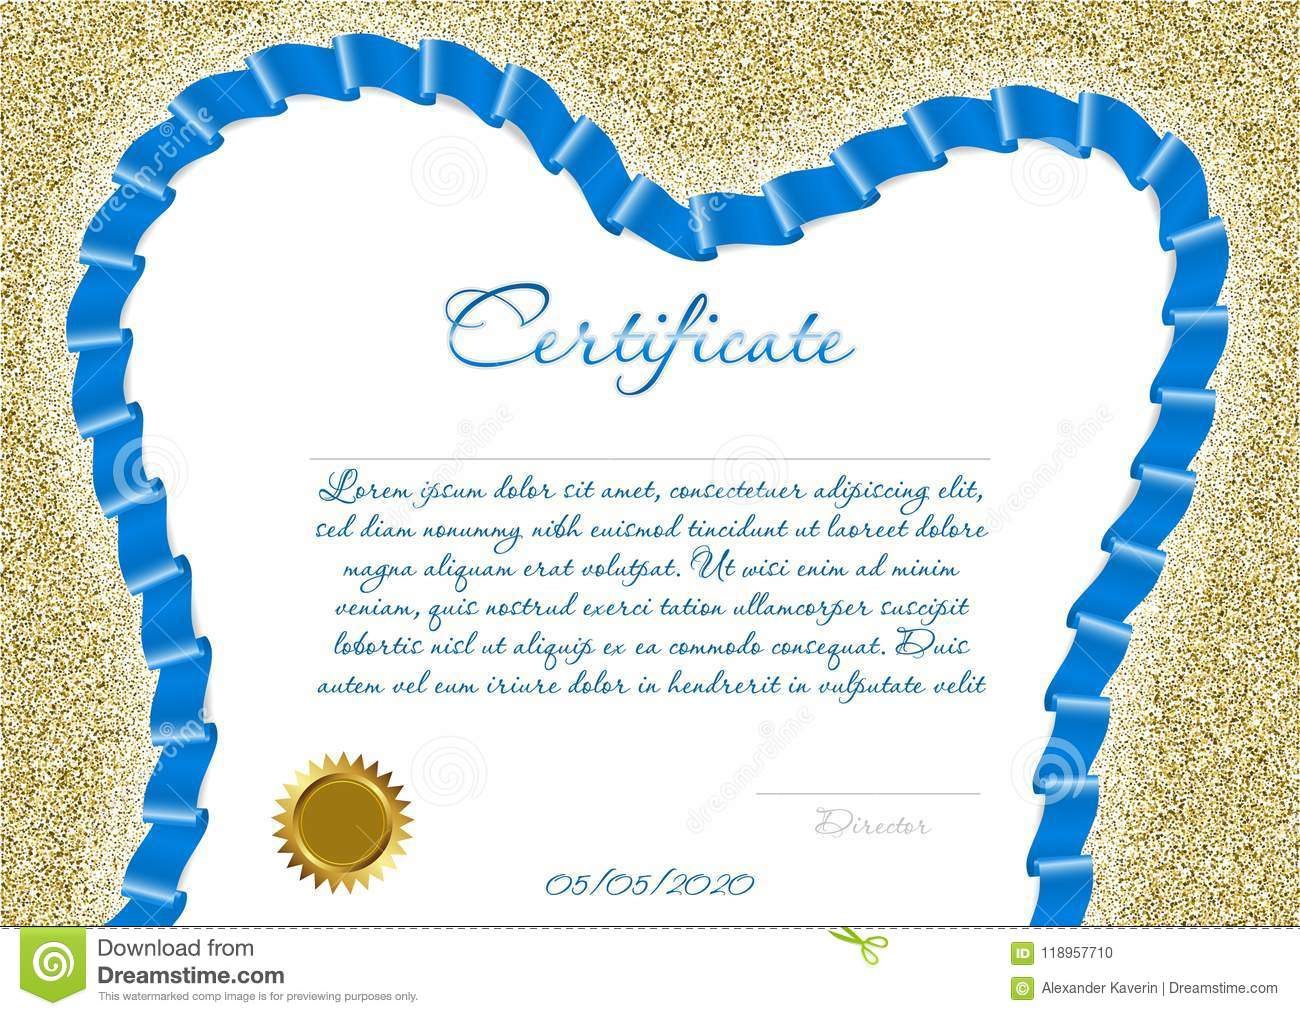 Certificate Or Diploma For A Dental Clinic With A Blue Colored